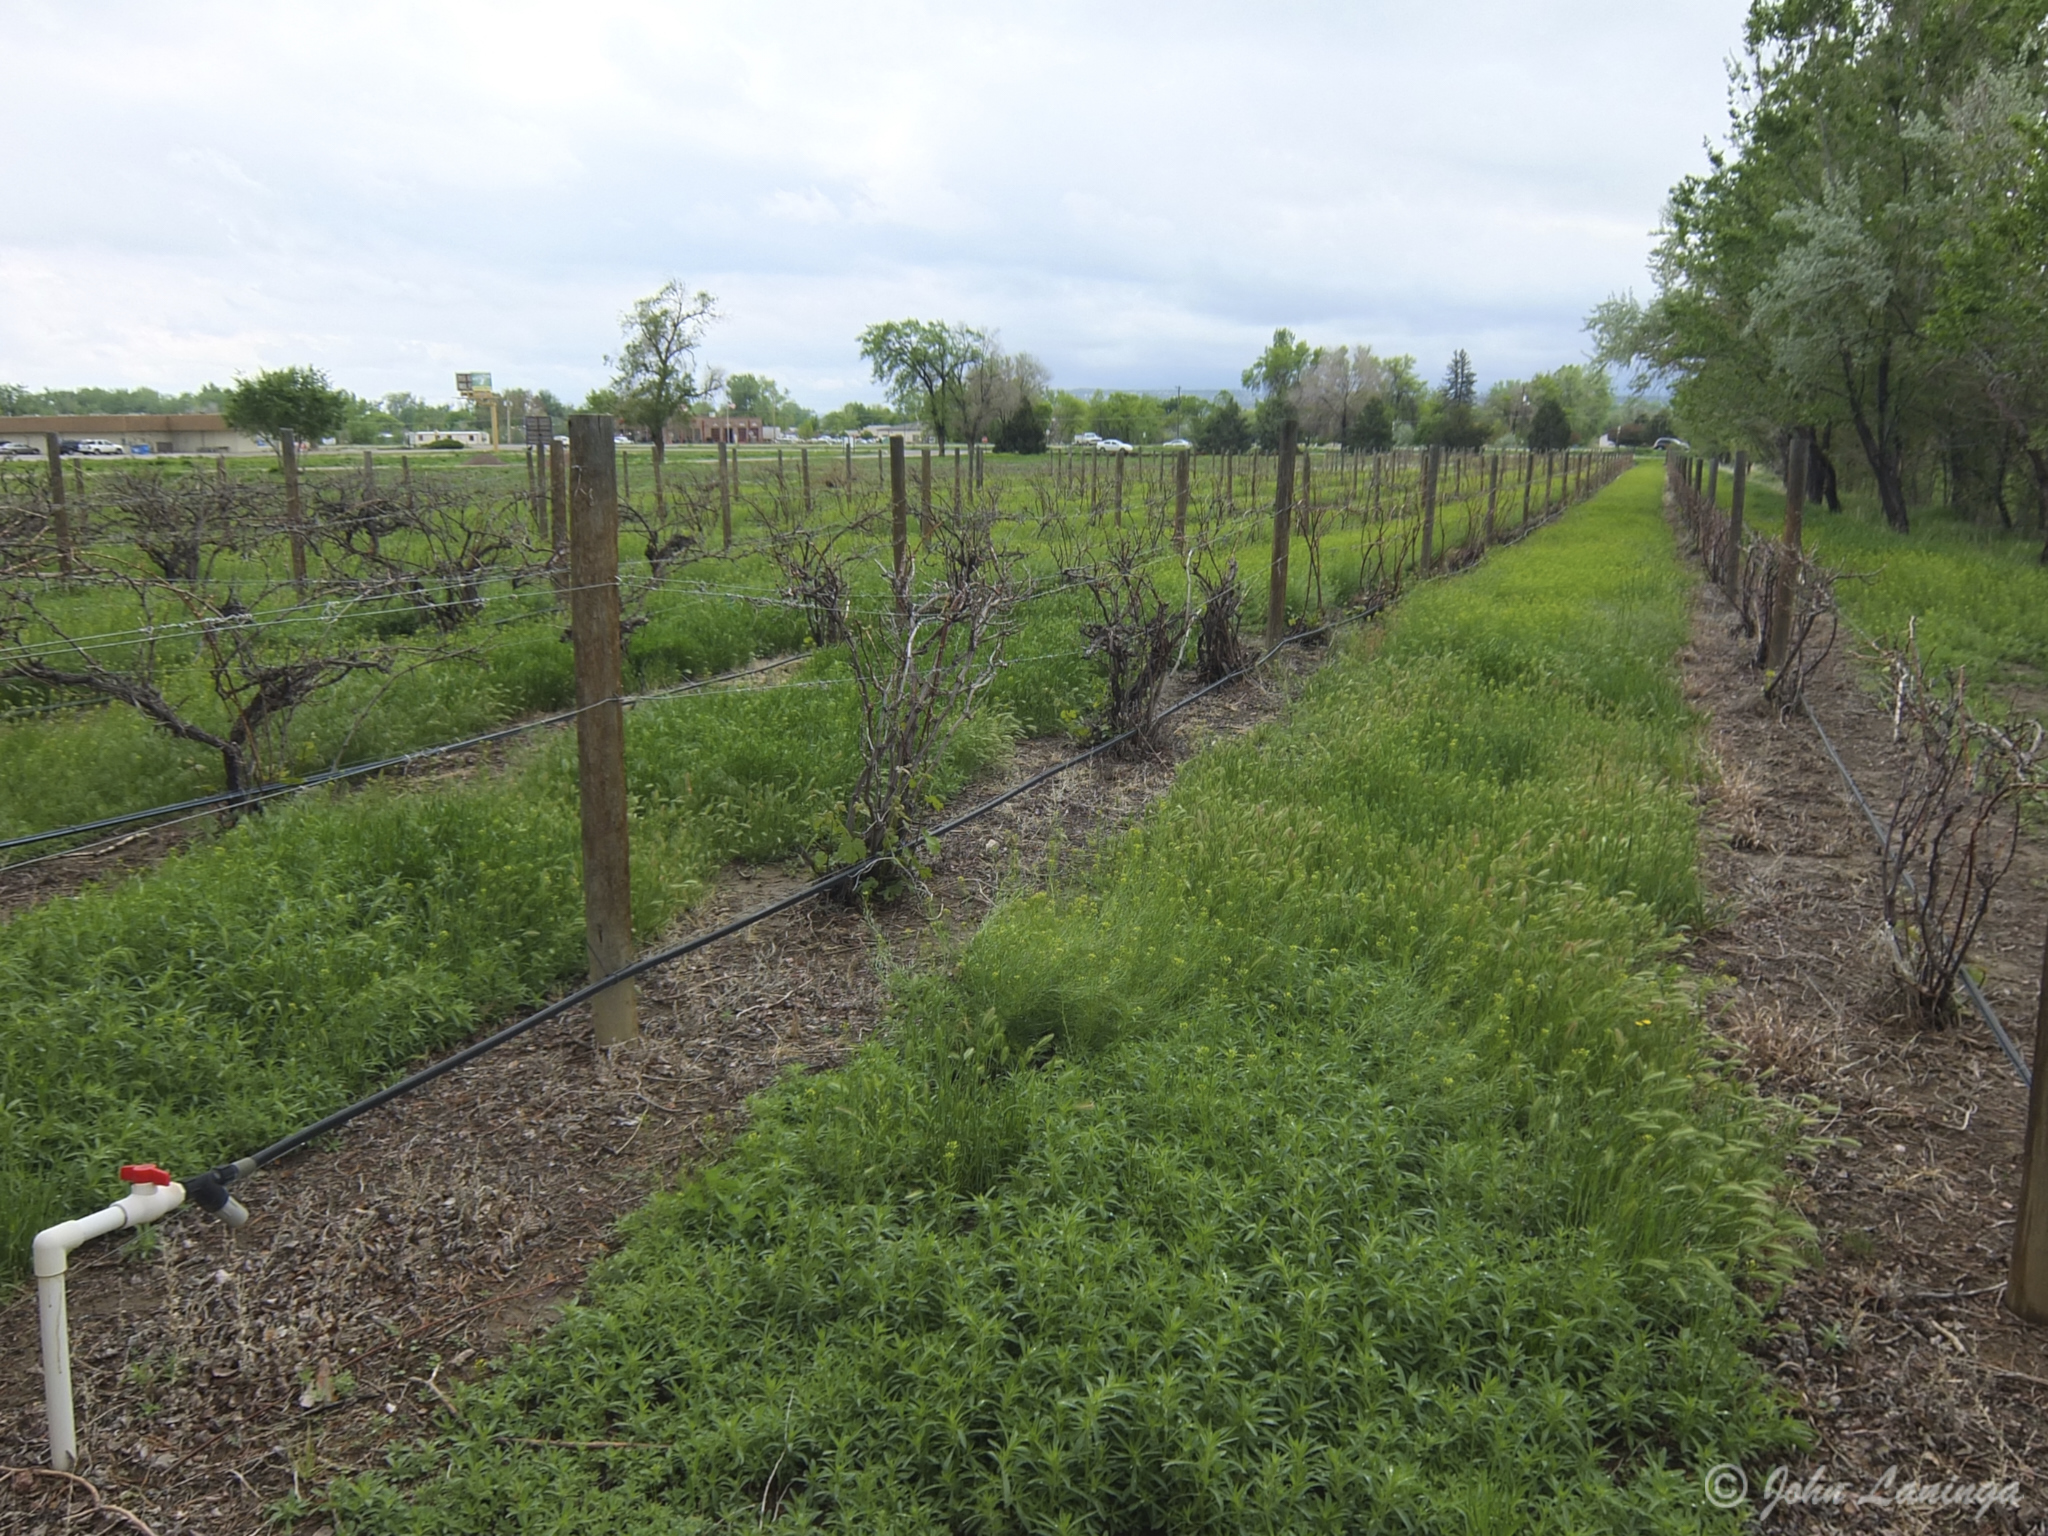 Vines, ready to grow!